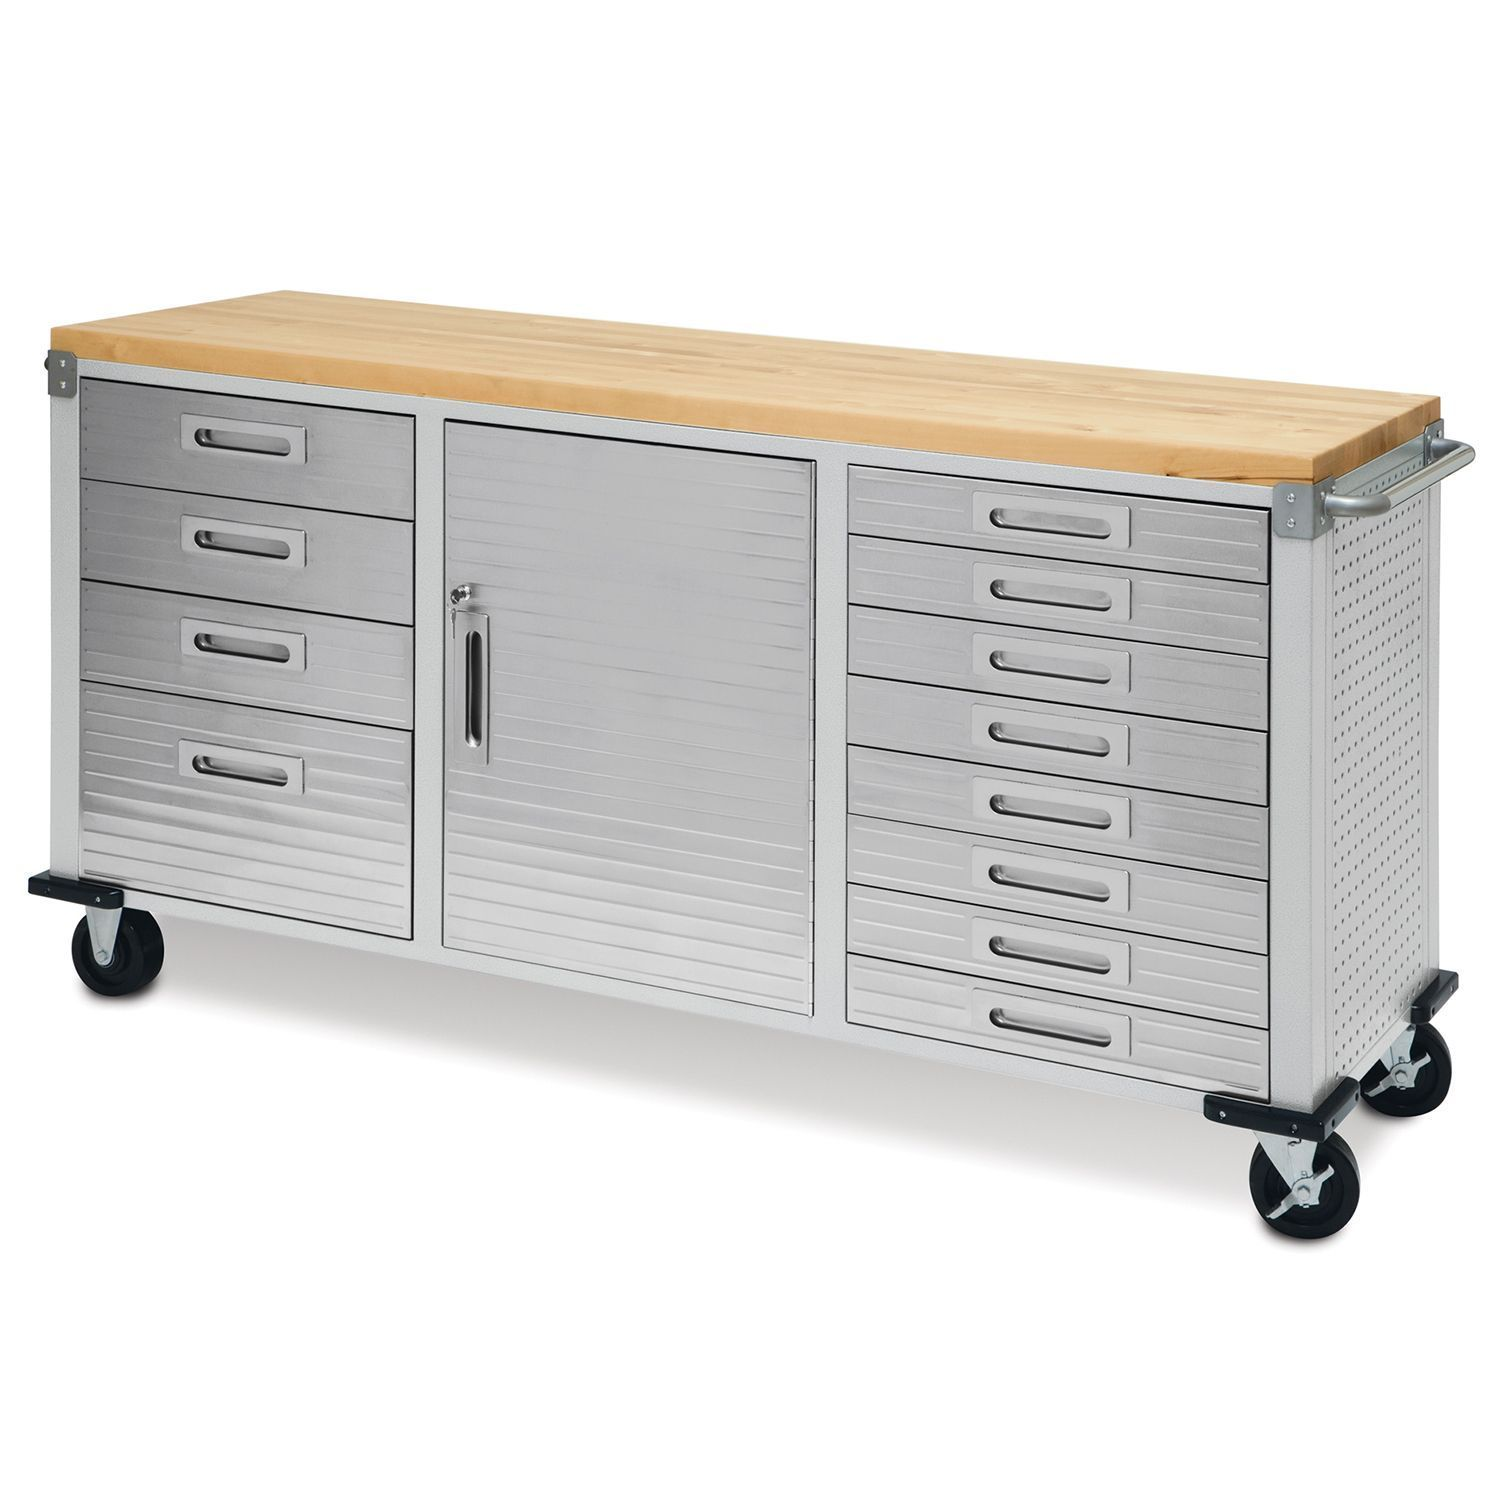 Metal Workbench | Mechanics Workbench | Kobalt Workbenches